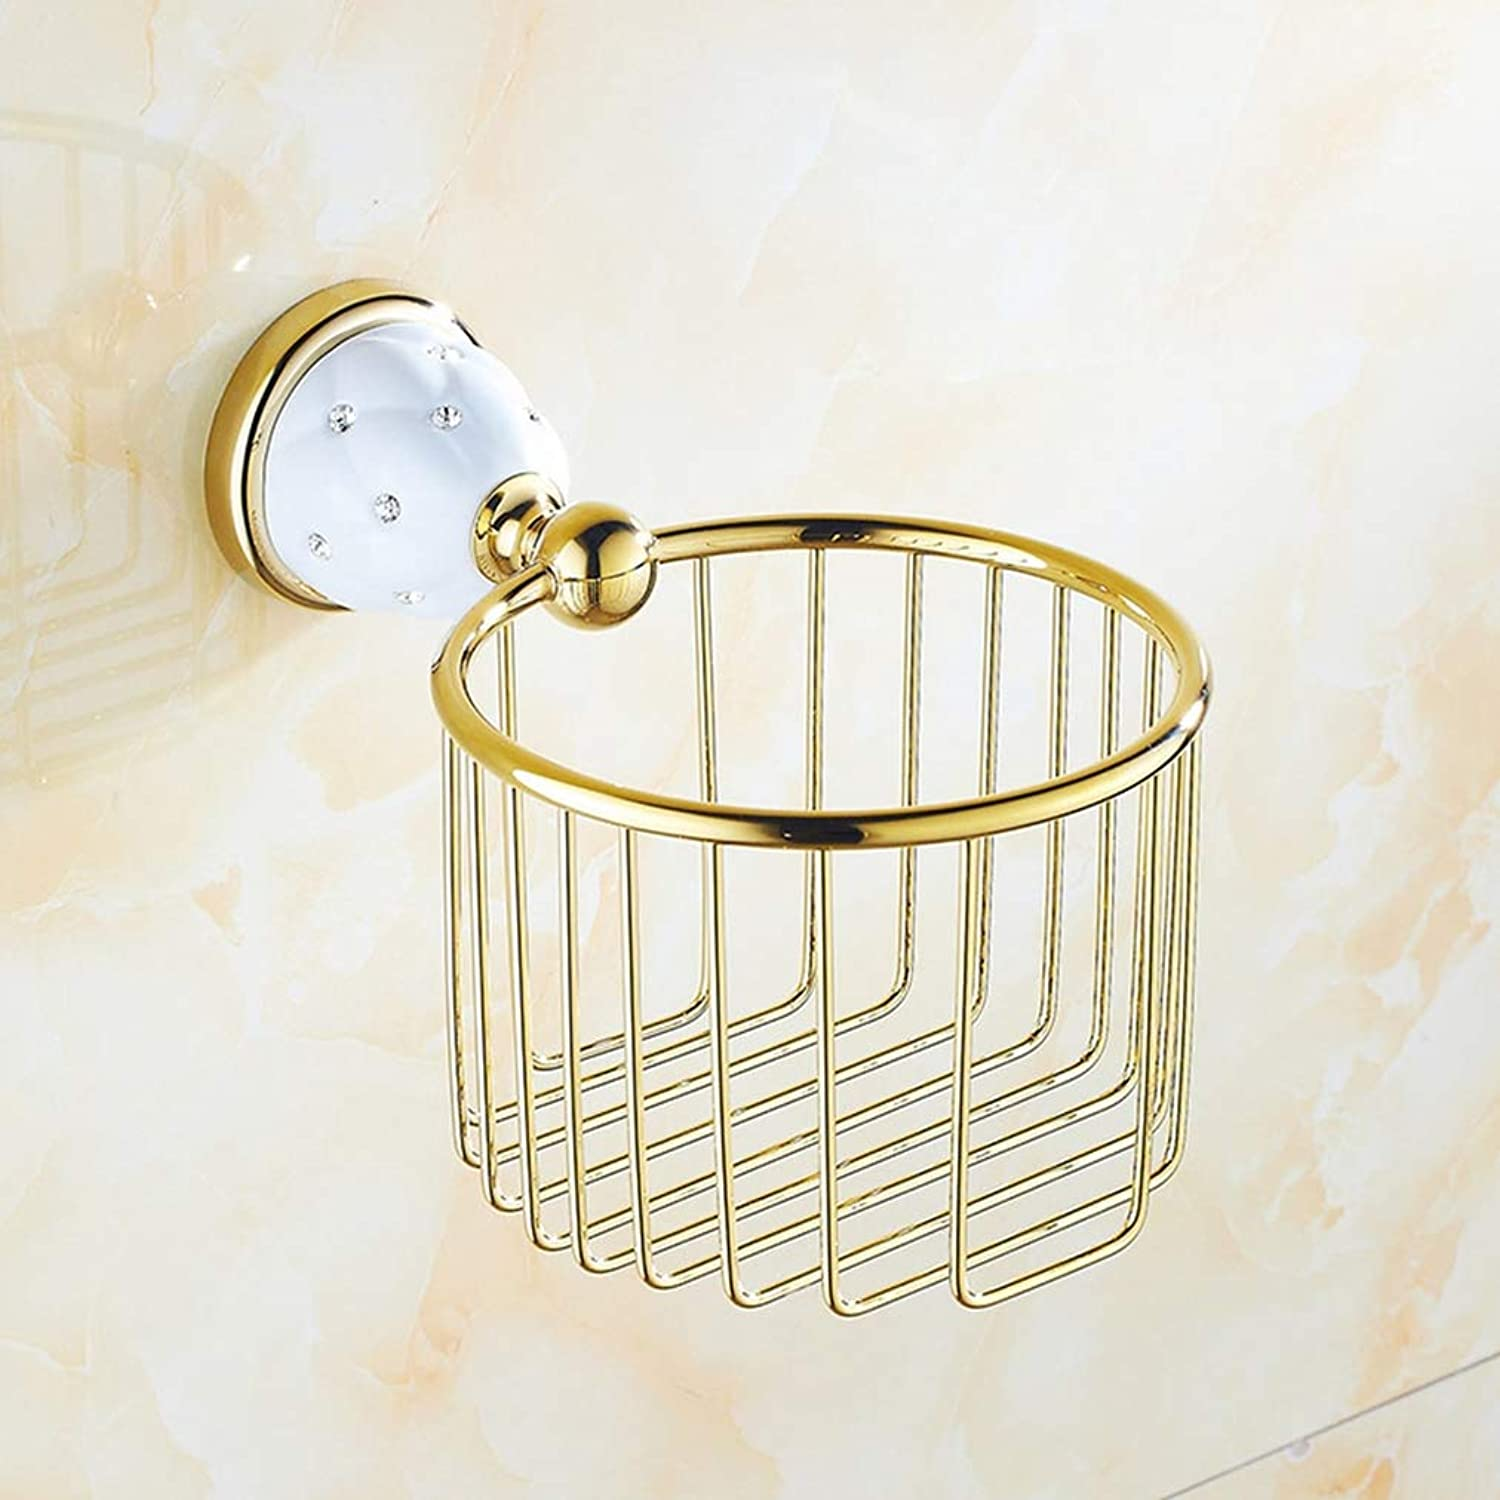 LUDSUY Bathroom Shelf Diamond gold Chrome Wall-Mounted Toilet Paper Holder Bathroom Basket Bathroom Accessories,A